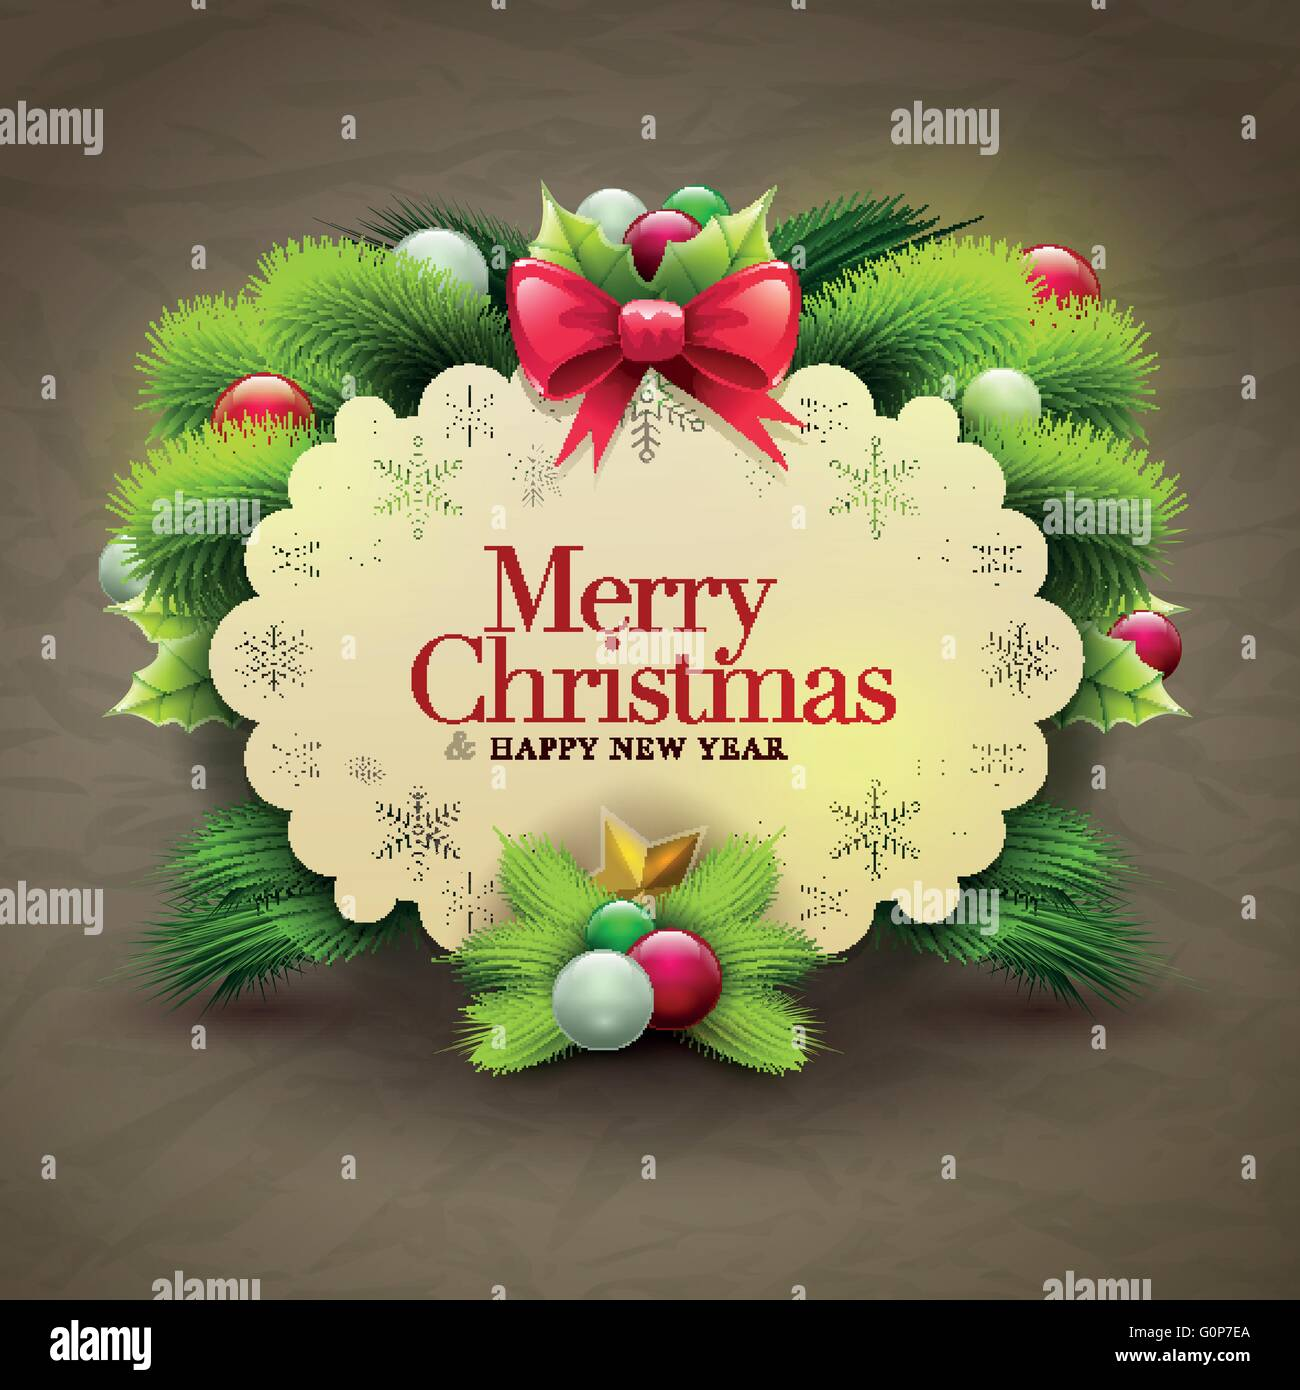 Christmas Invitation Message Card With Ornaments Vector